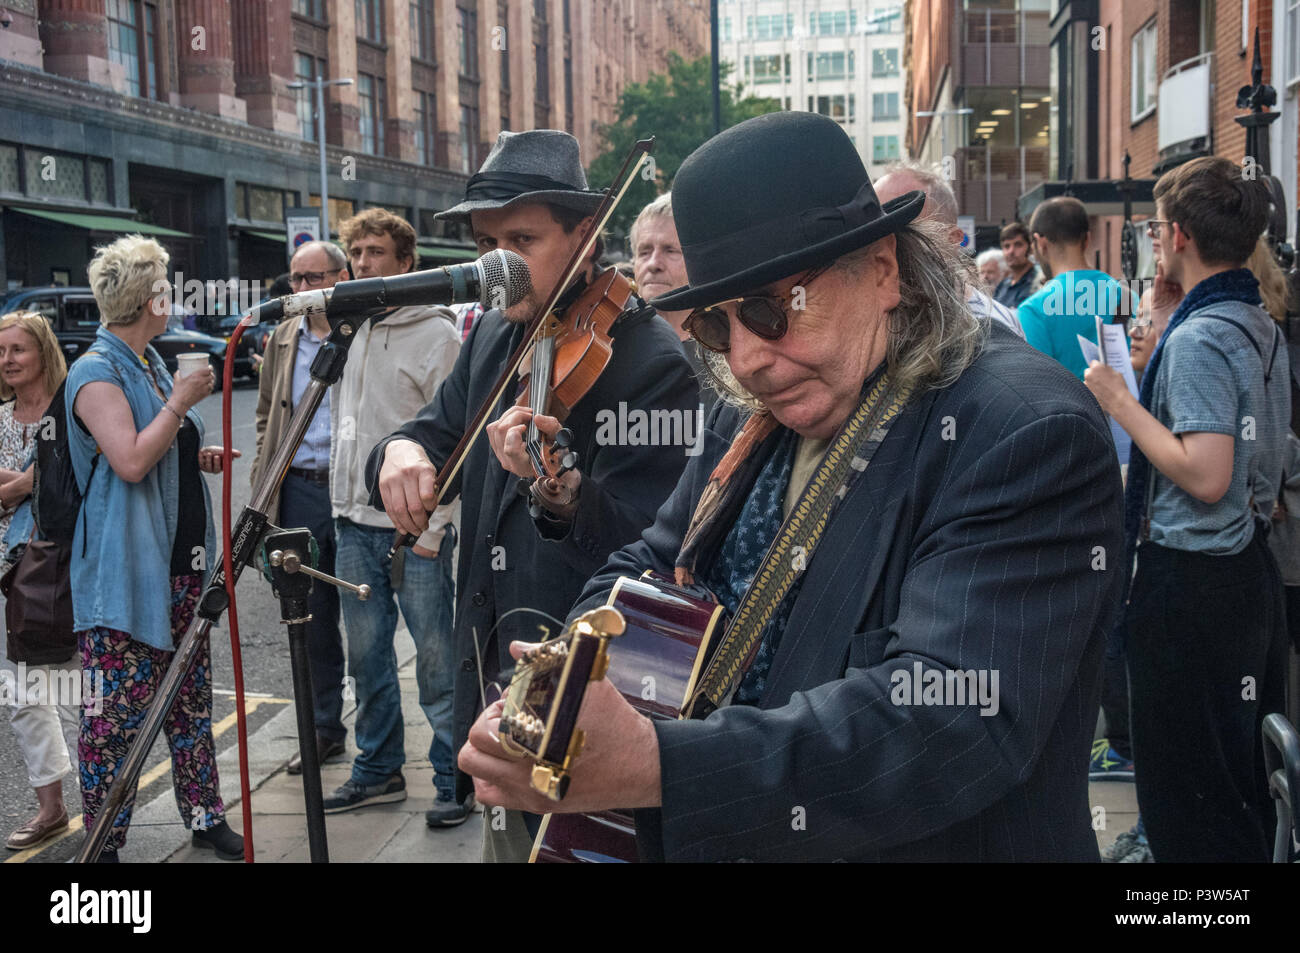 London, UK. 19th June 2018. Irish singer/songwriter Joe Black performs at the rally outside the Ecuadorian Embassy in London calling for Julian Assange to be allowed safe passage to the place of his choice to mark six years since he was given asylum there. They called for the UK authorities to allow him to leave the embassy and go to the country of his choice without being arrested. Credit: Peter Marshall/Alamy Live News - Stock Image